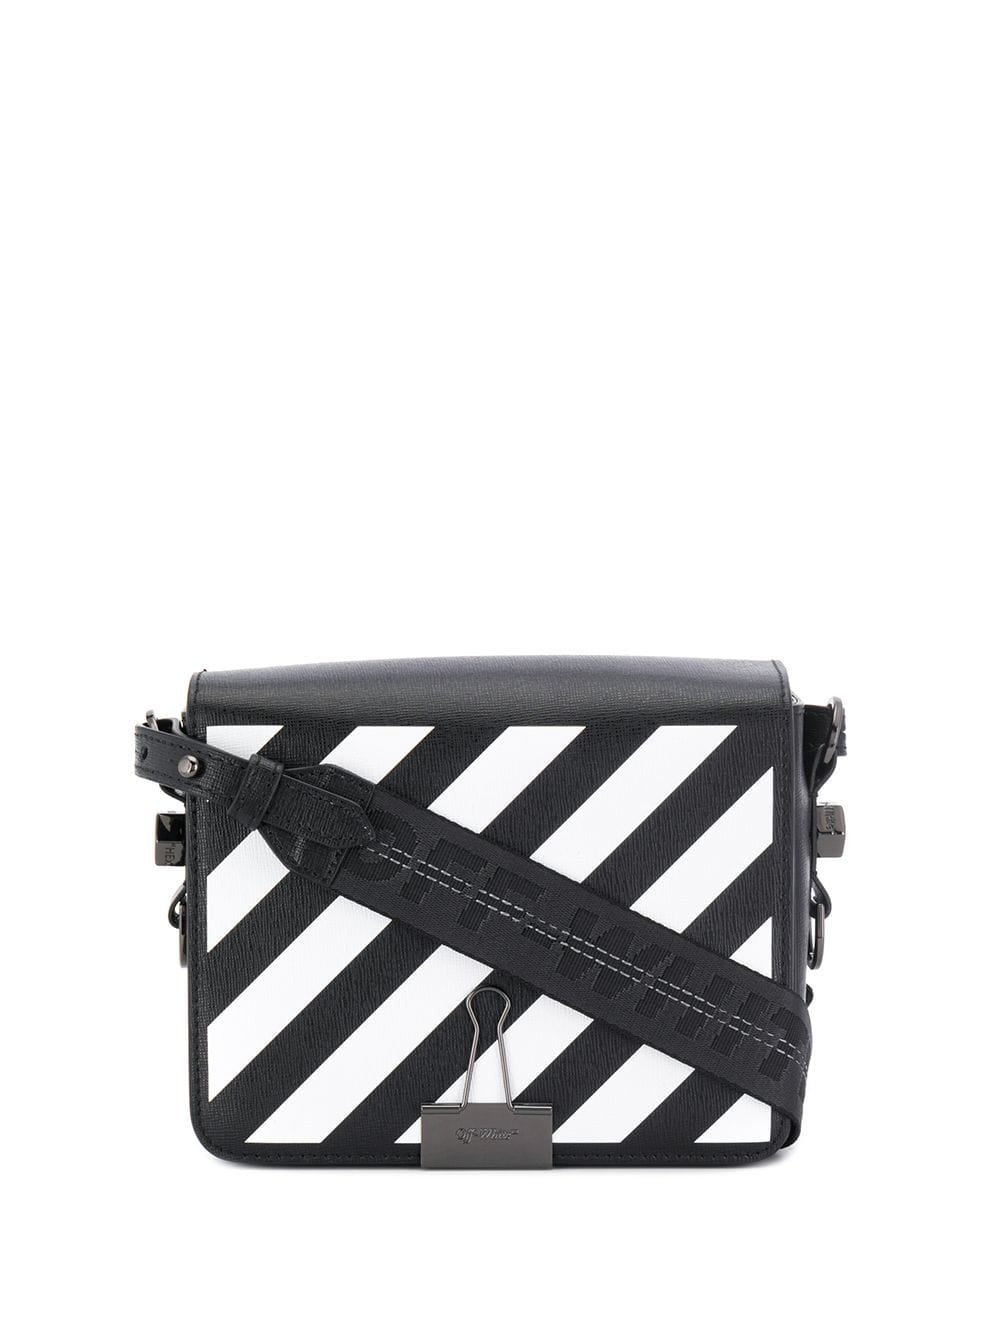 OFF-WHITE WOMEN DIAG FLAP BAG